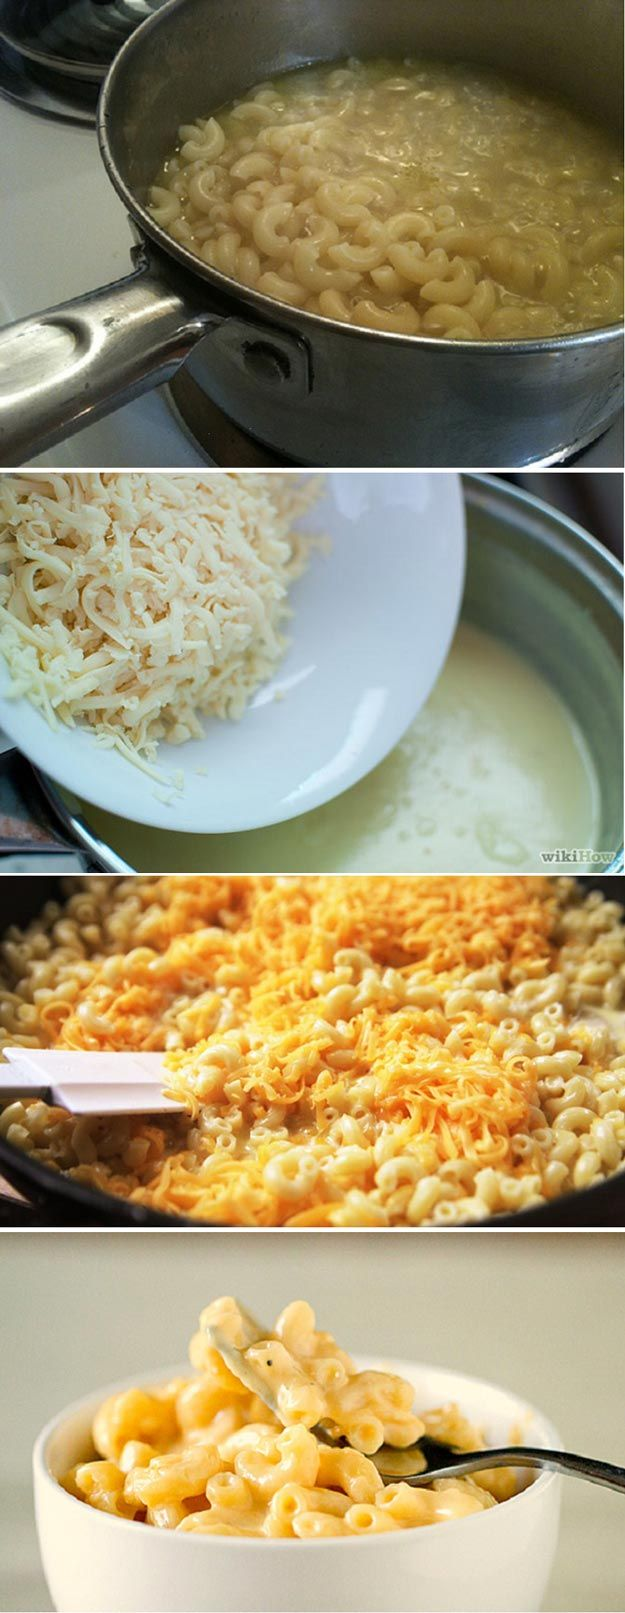 Simple Mac N Cheese | Pioneer Woman Mac and Cheese Recipes | Best Homemade Recipe Ideas For Dinner by Pioneer Settler at http://pioneersettler.com/pioneer-woman-mac-cheese-recipes/